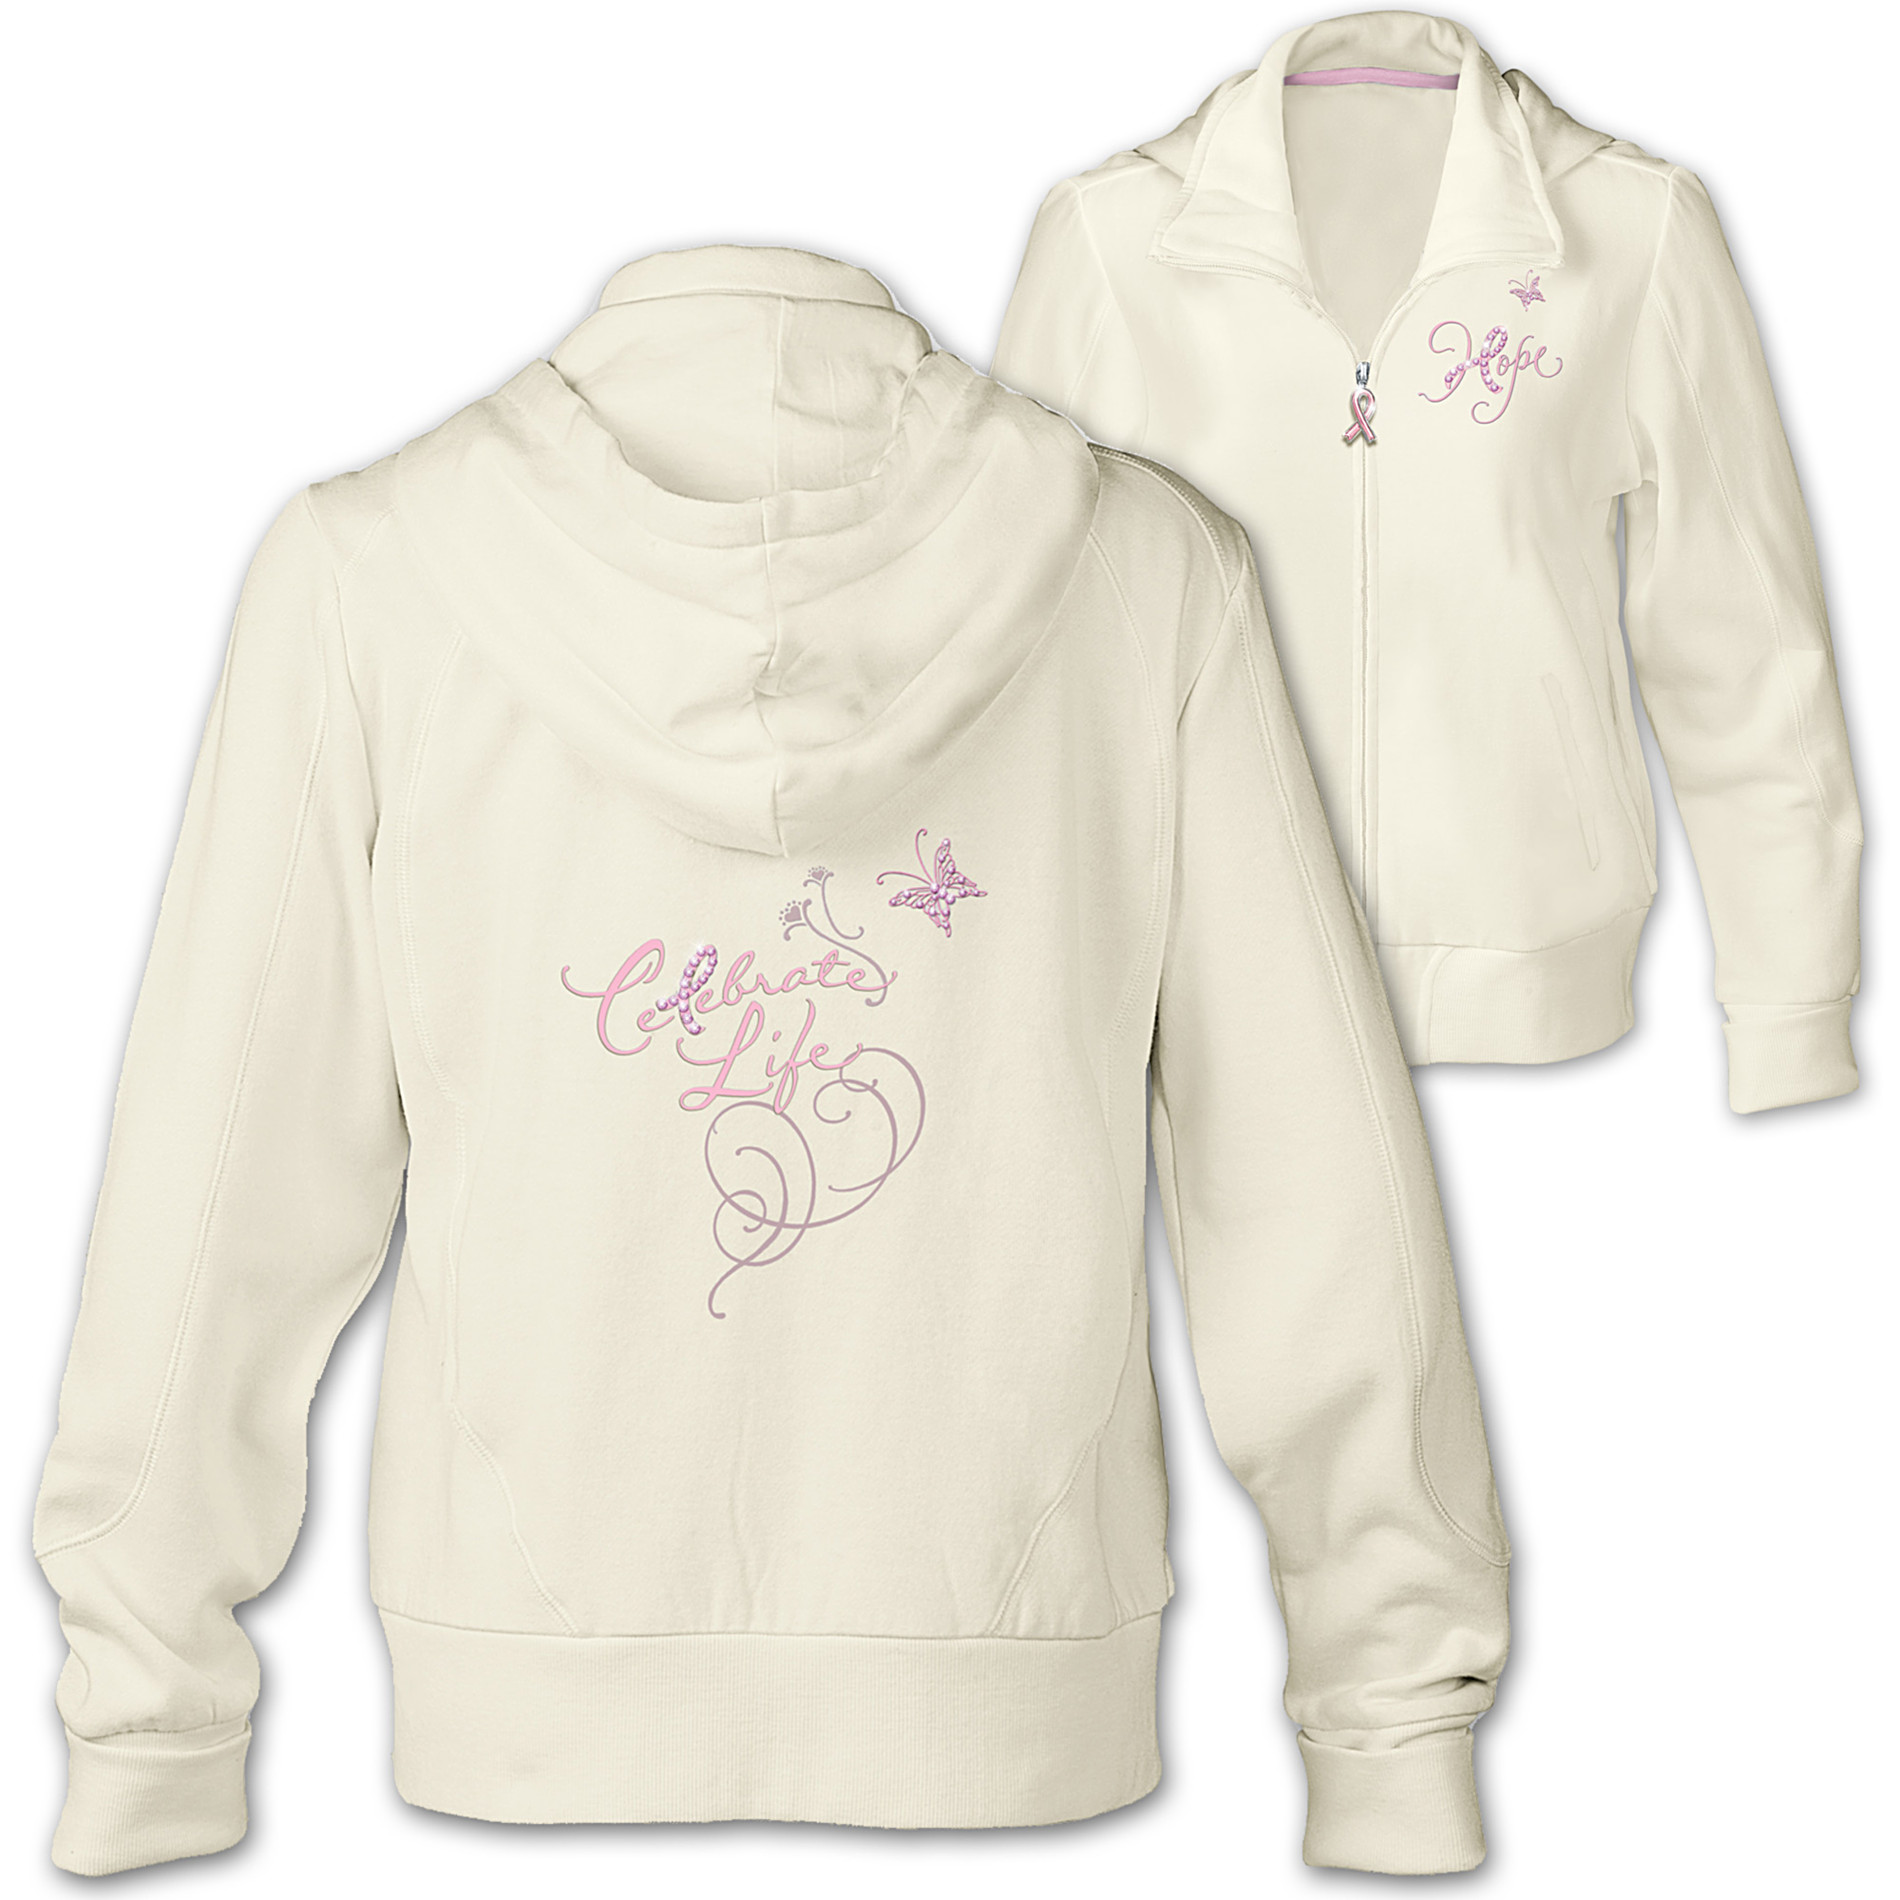 The Bradford Exchange Breast Cancer Support Women's Hoodie: Celebrate Life at Sears.com